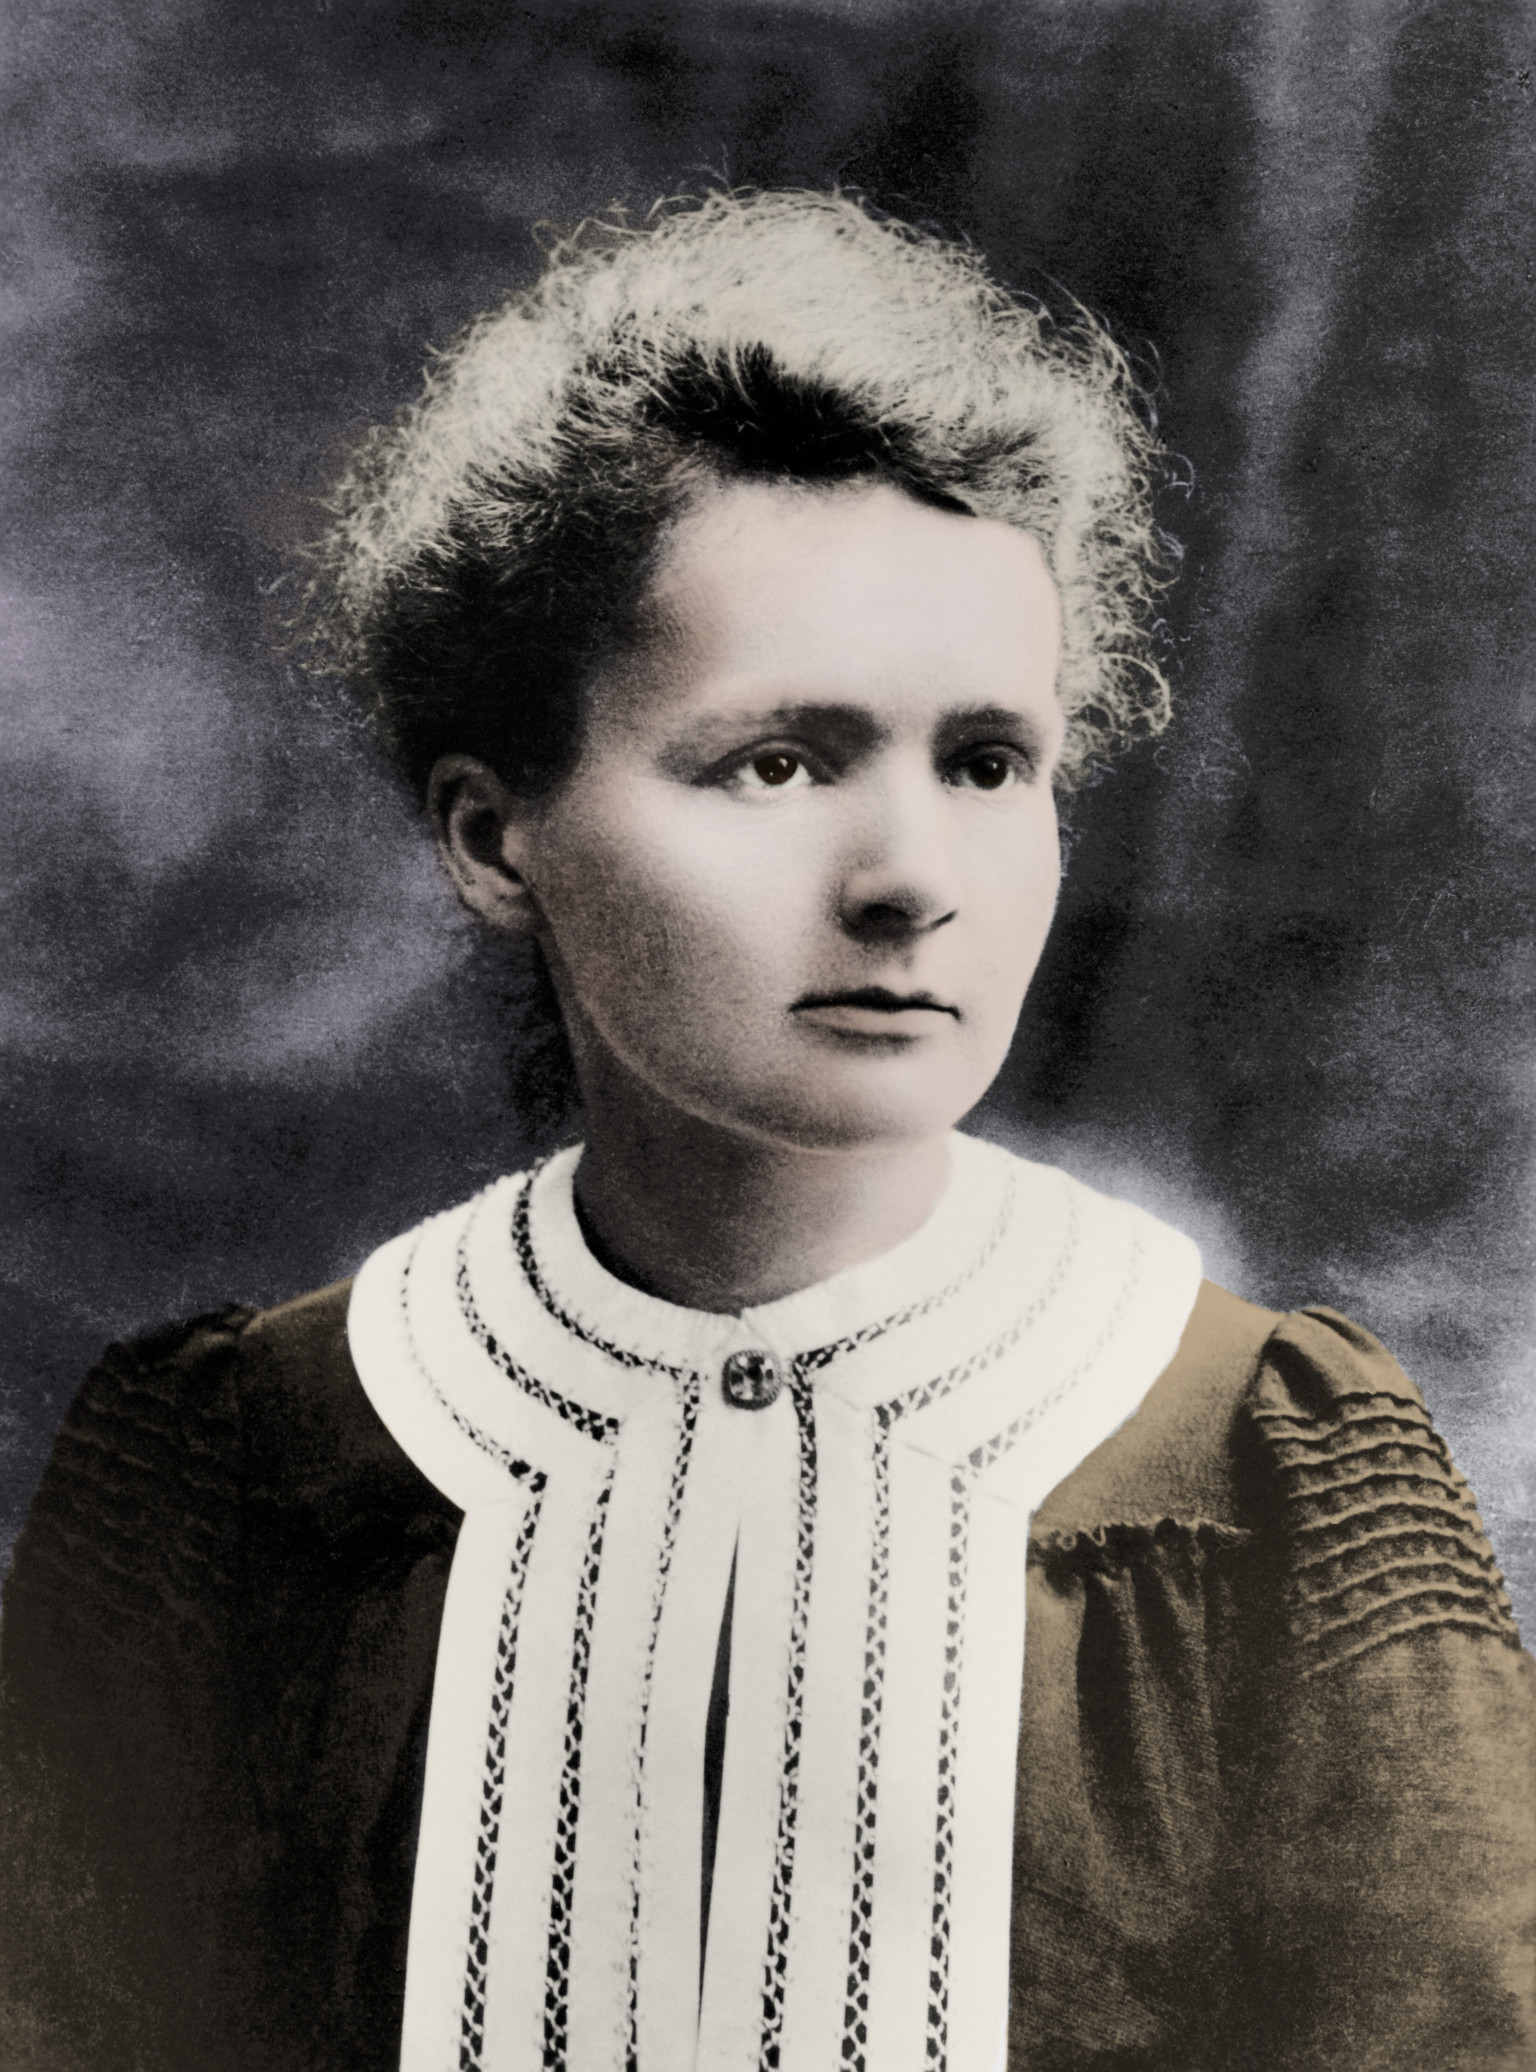 marie curie Kids learn about the biography of marie curie, woman scientist who worked on radioactivity and won two nobel prizes for science.